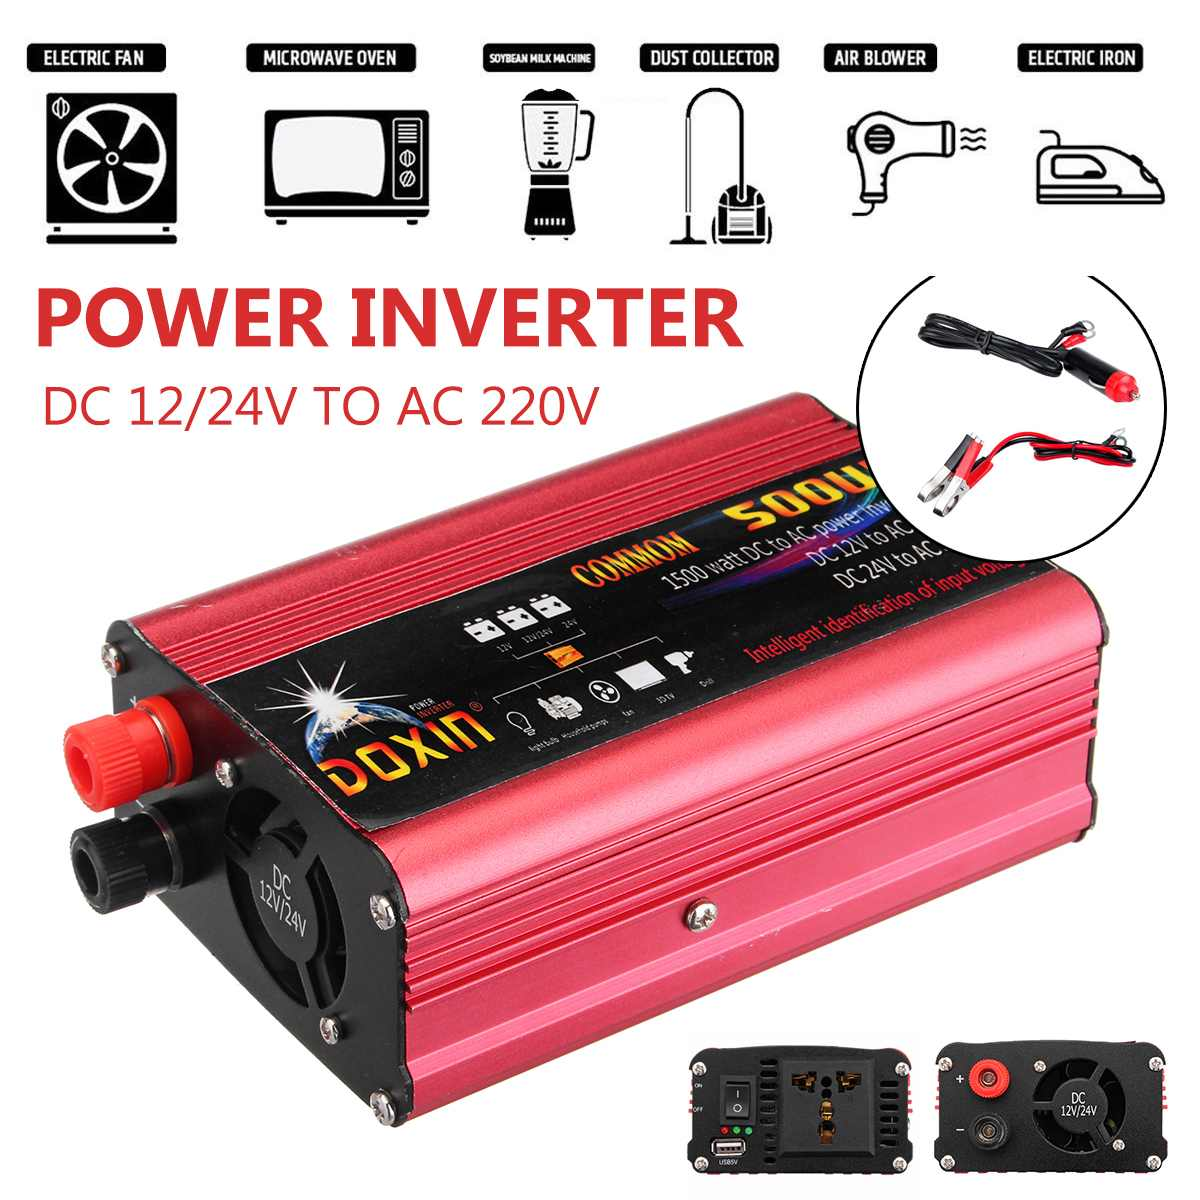 Car Power <font><b>Inverter</b></font> <font><b>1000W</b></font> Modified Sine Wave <font><b>Inverter</b></font> Converter DC <font><b>12V</b></font>/24V To AC 220V USB Plug Port Home Charge Car Accessories image